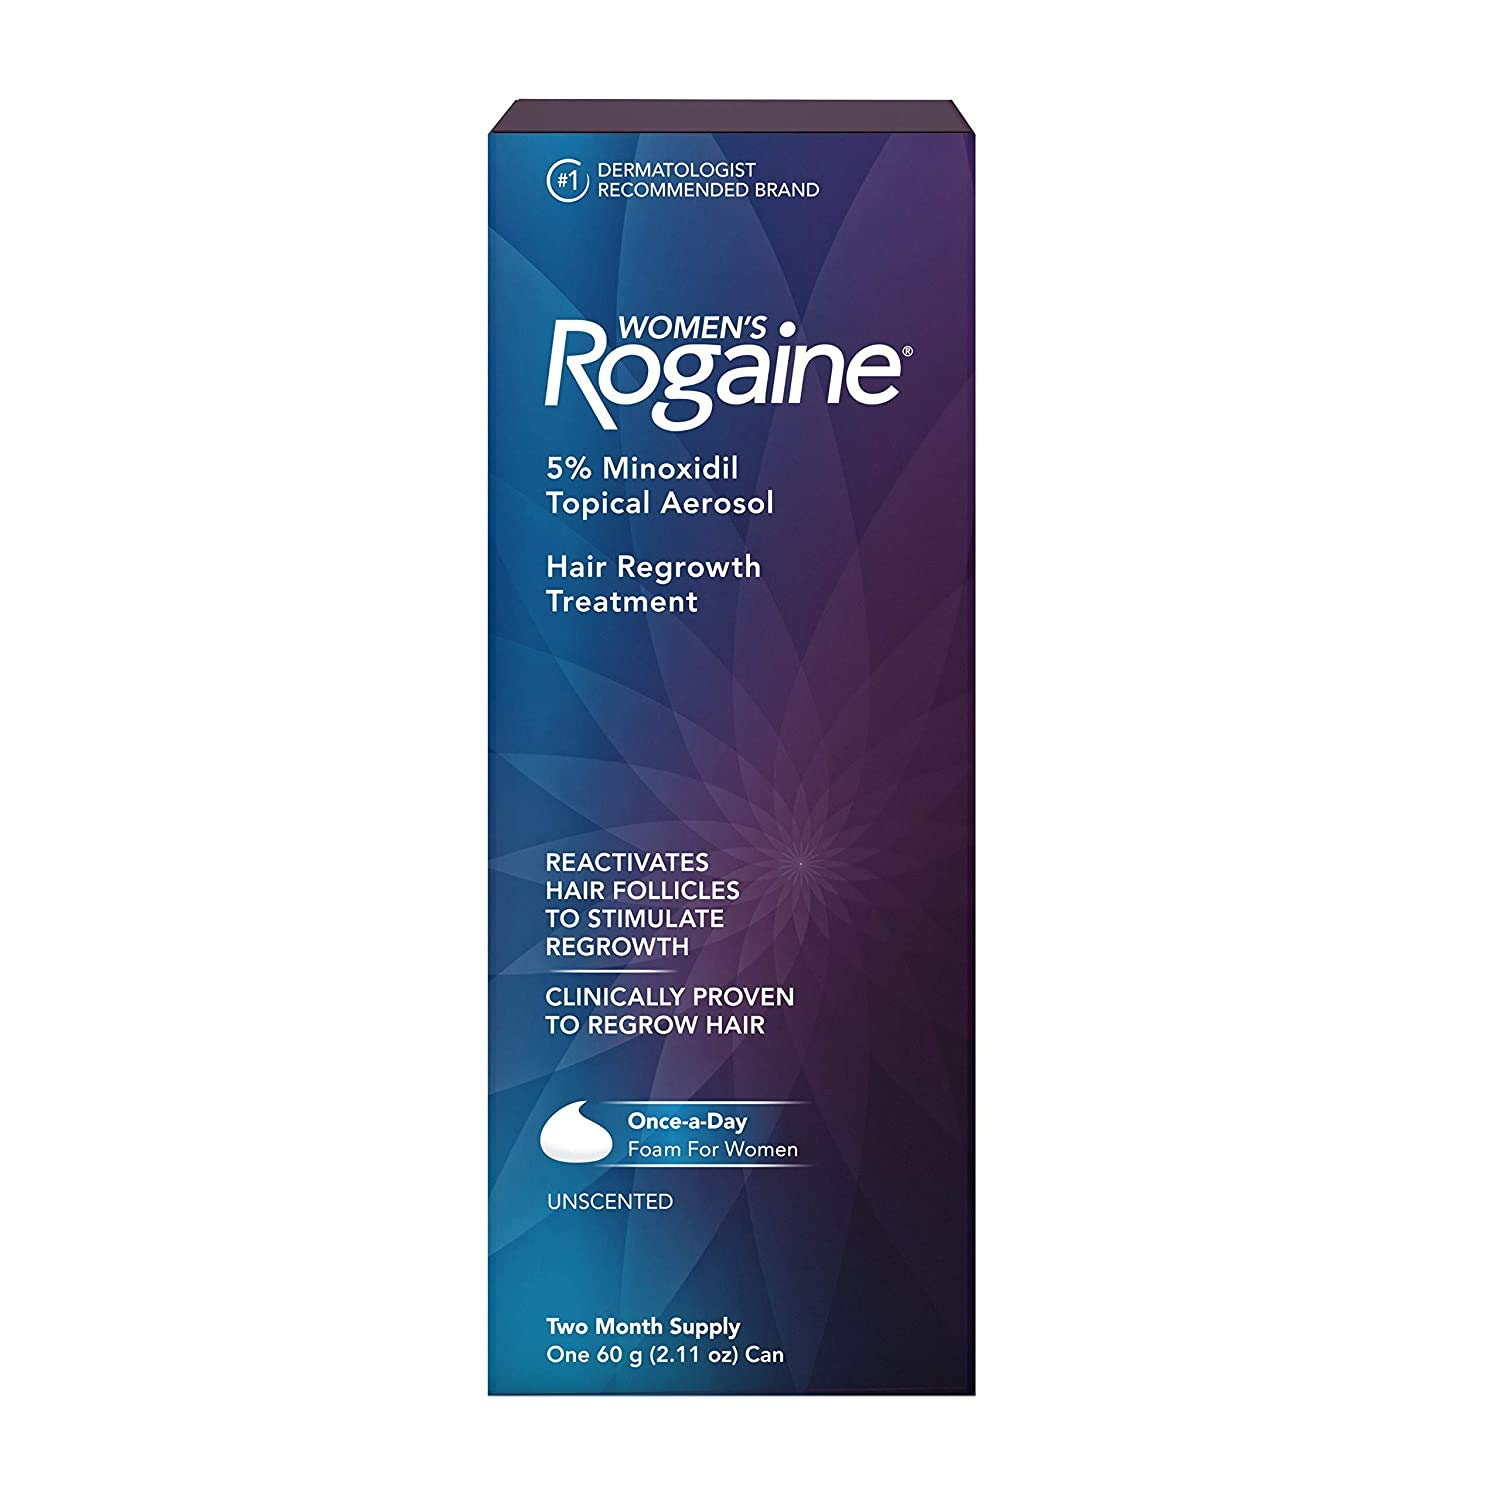 Women's Rogaine 5% Minoxidil Foam for Hair Thinning and Loss, Topical Treatment for Women's Hair Regrowth, 2-Month Supply : Beauty